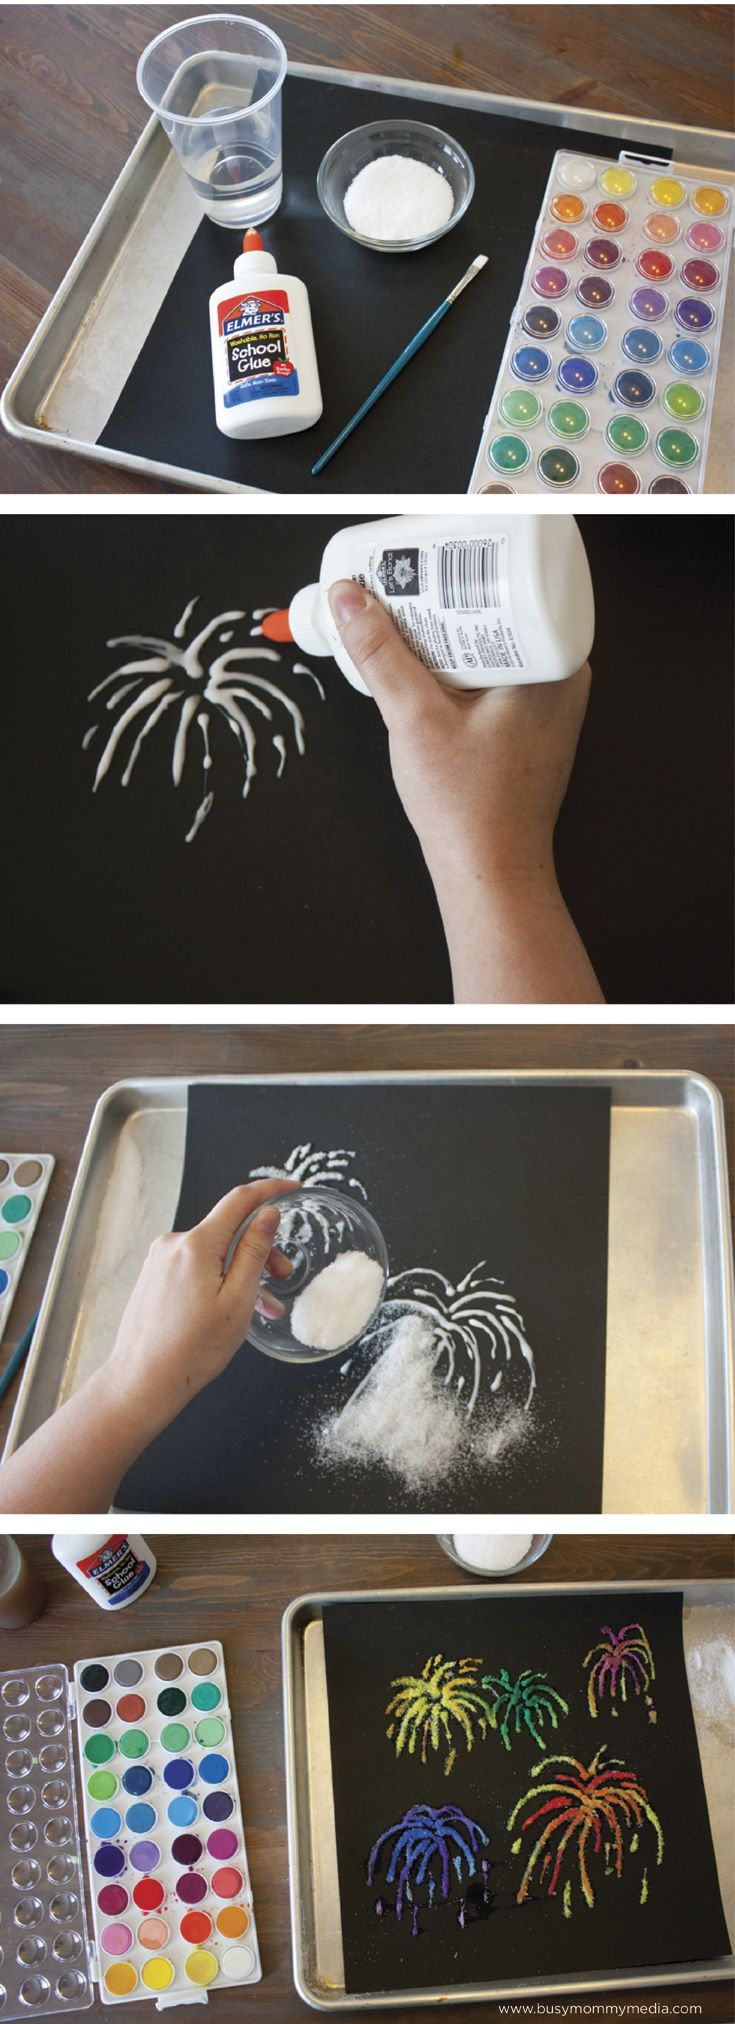 Salt Painting - This is such a cool project! I love that it only uses a few materials and it looks so fun!